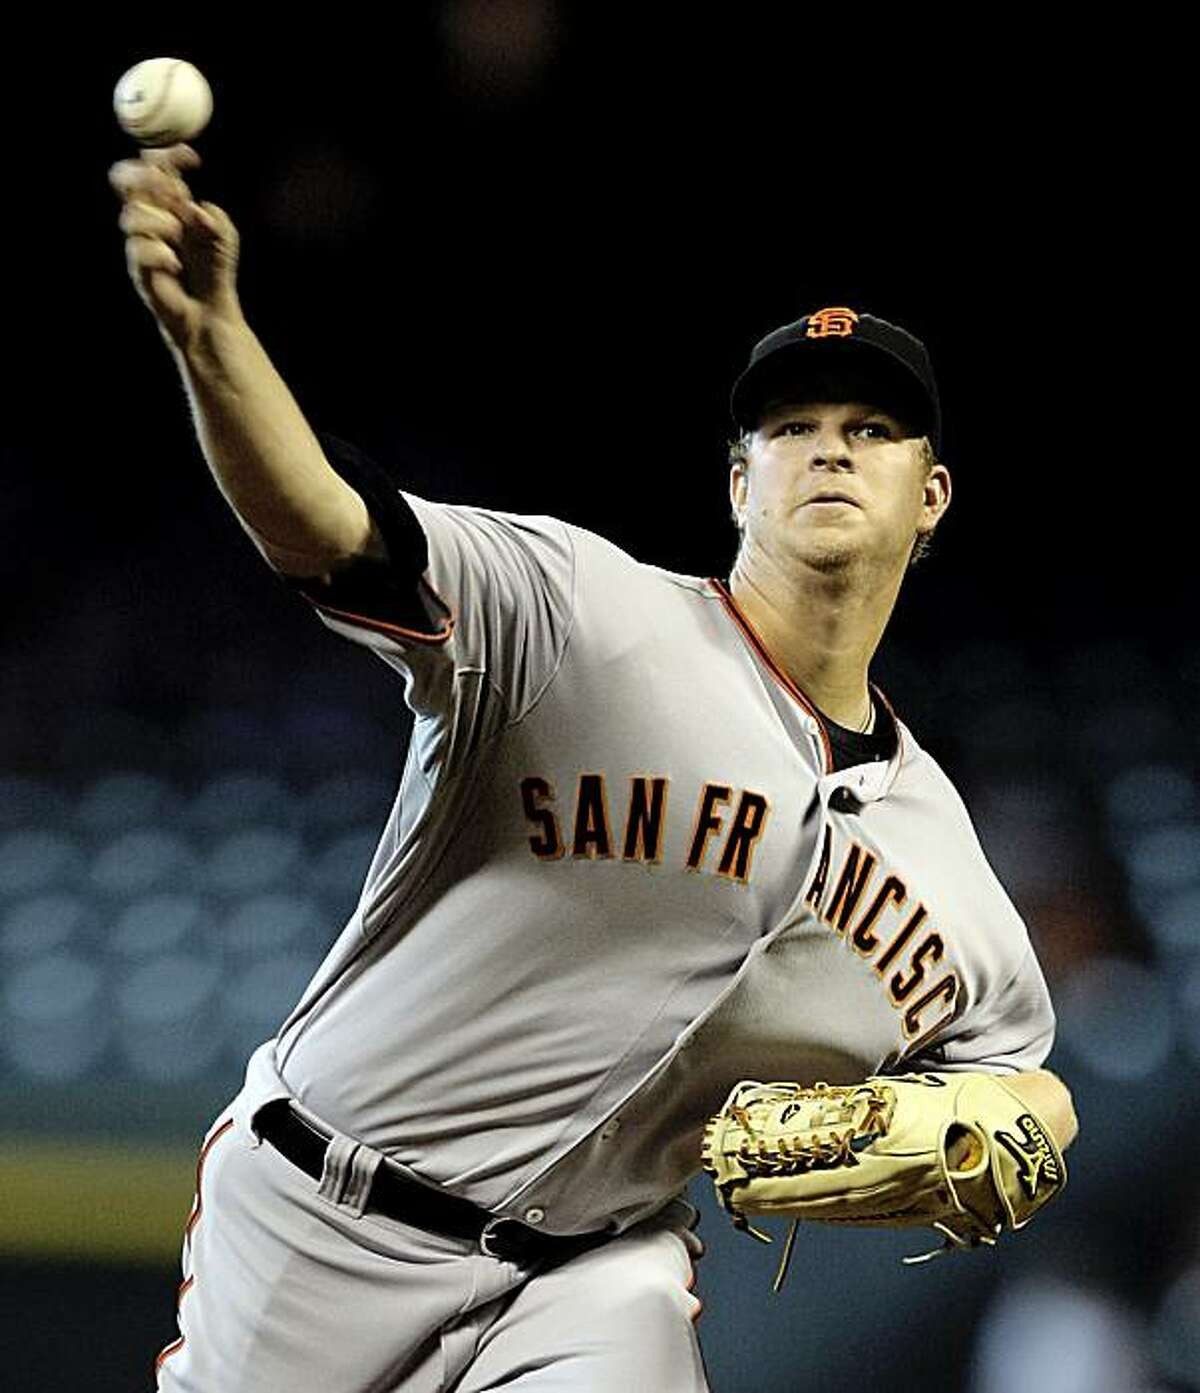 San Francisco Giants starting pitcher Matt Cain throws in the first inning against the Houston Astros in a baseball game in Houston on Wednesday, April 7, 2010.